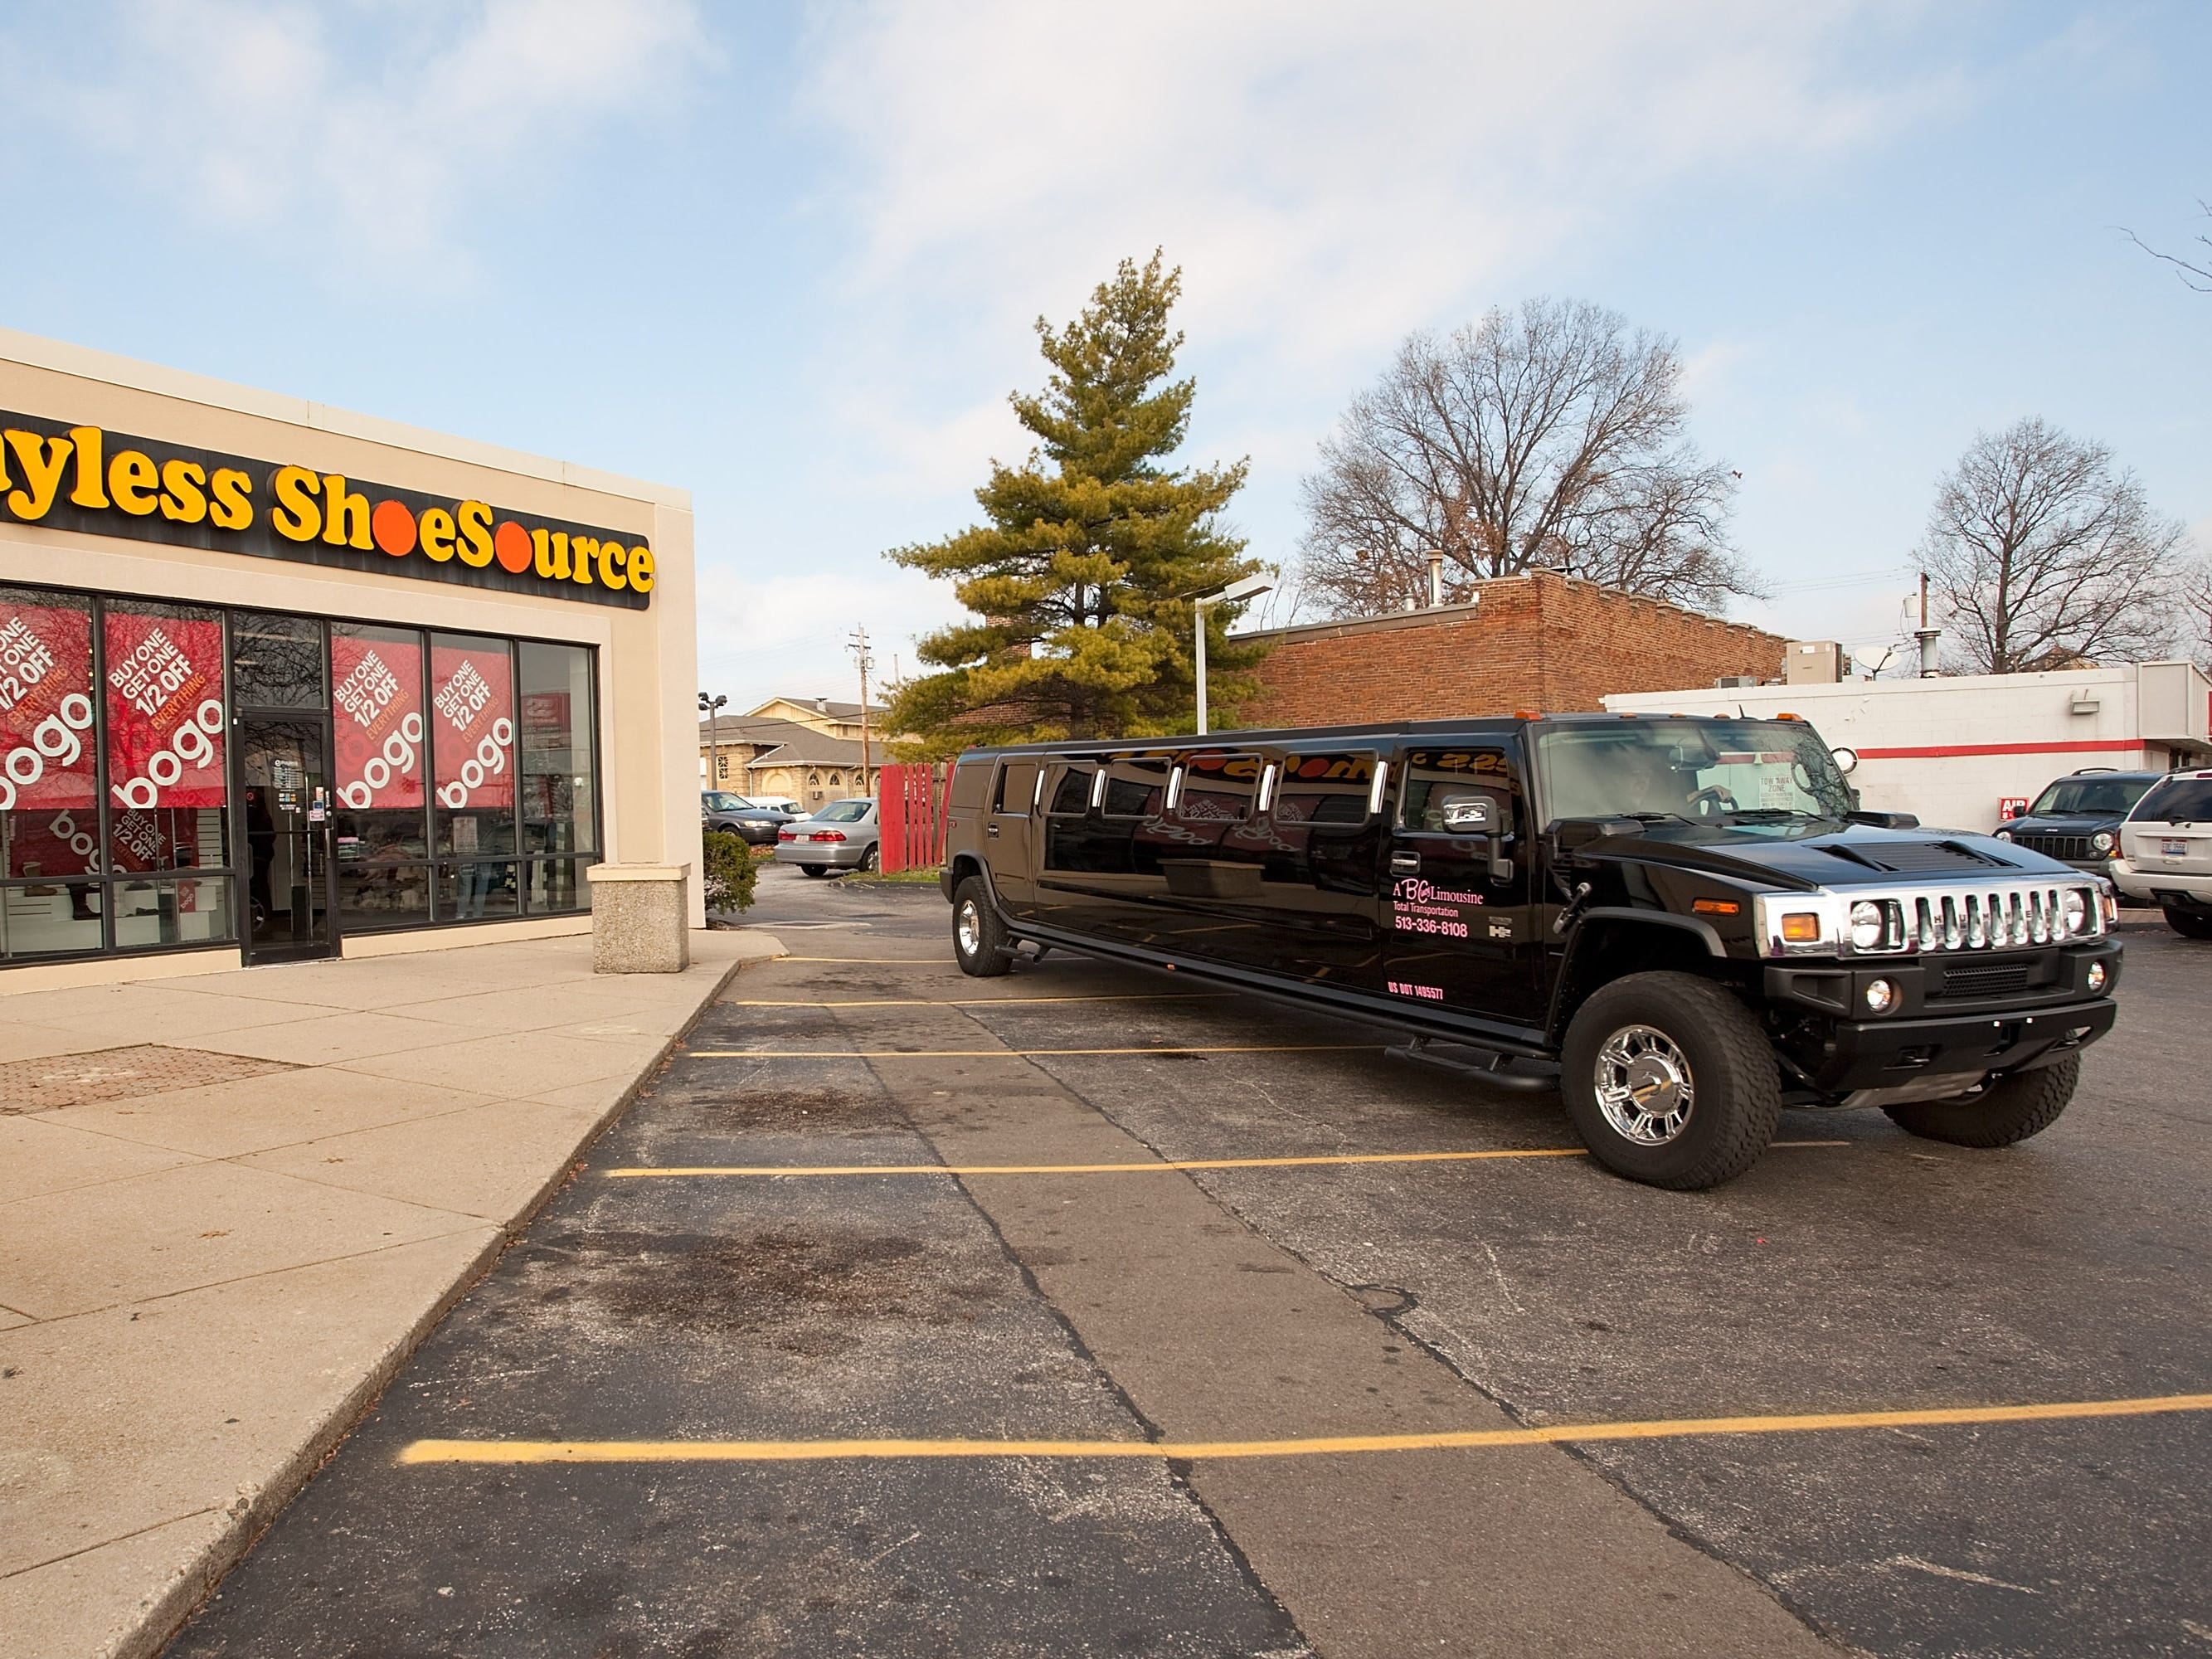 This limo outside a Payless ShoeSource in Cincinnati, Ohio, Nov. 20, 2009.